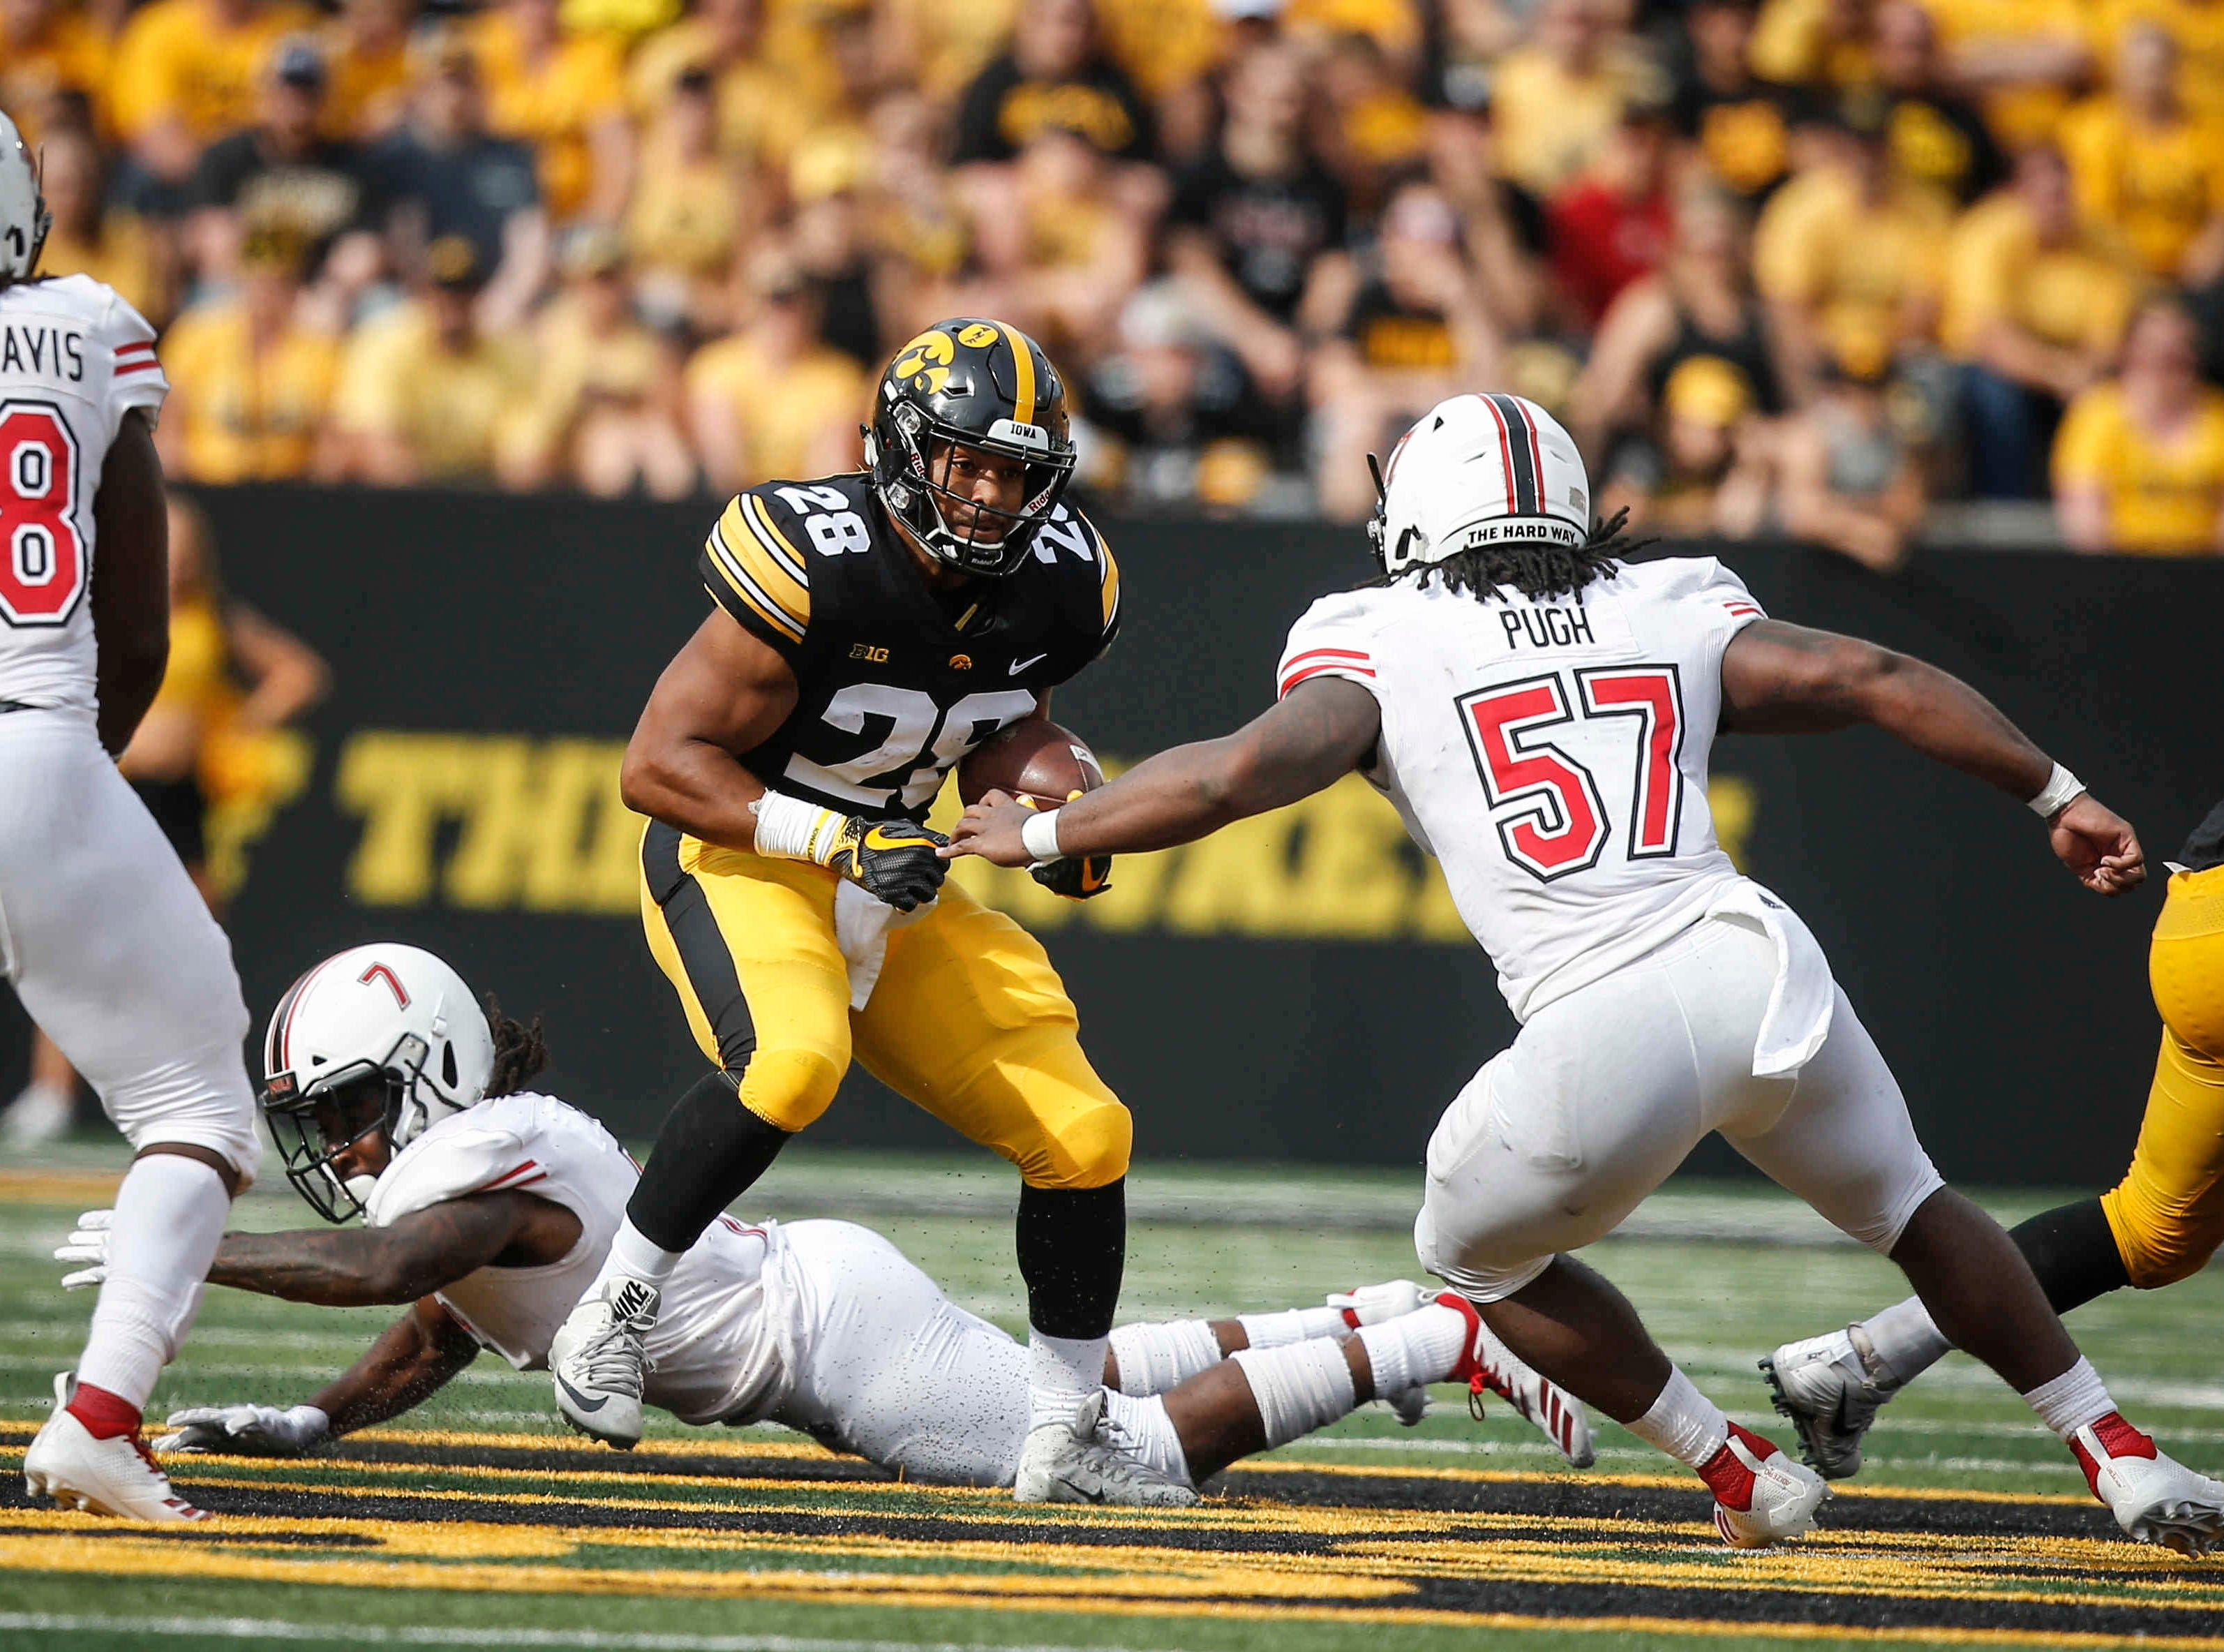 Iowa running back Toren Young carries the ball against Northern Illinois on Saturday, Sept. 1, 2018, at Kinnick Stadium in Iowa City.